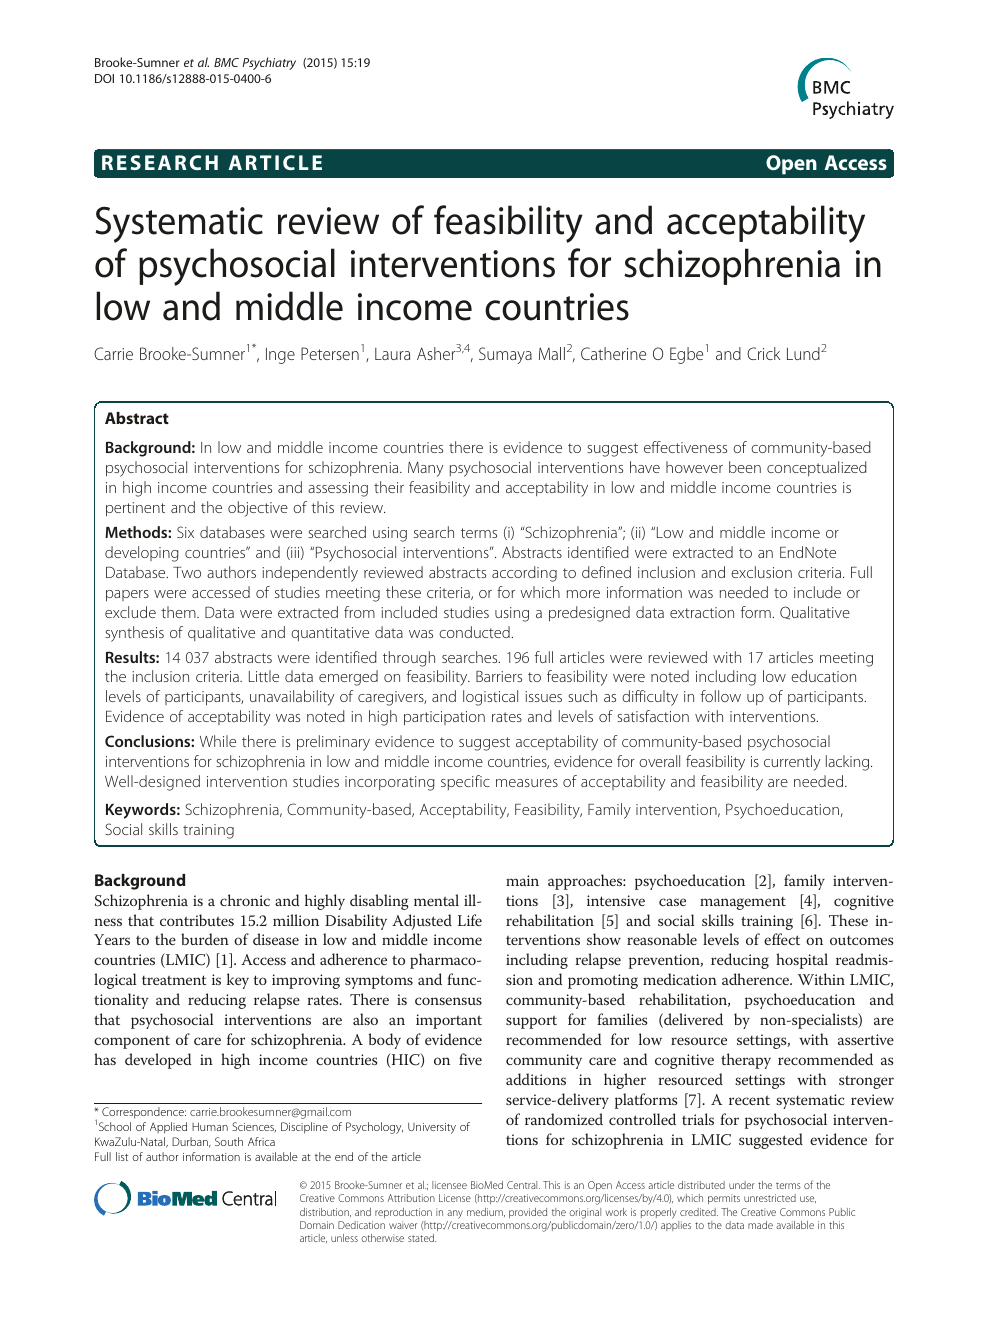 Systematic Review Of Feasibility And Acceptability Of